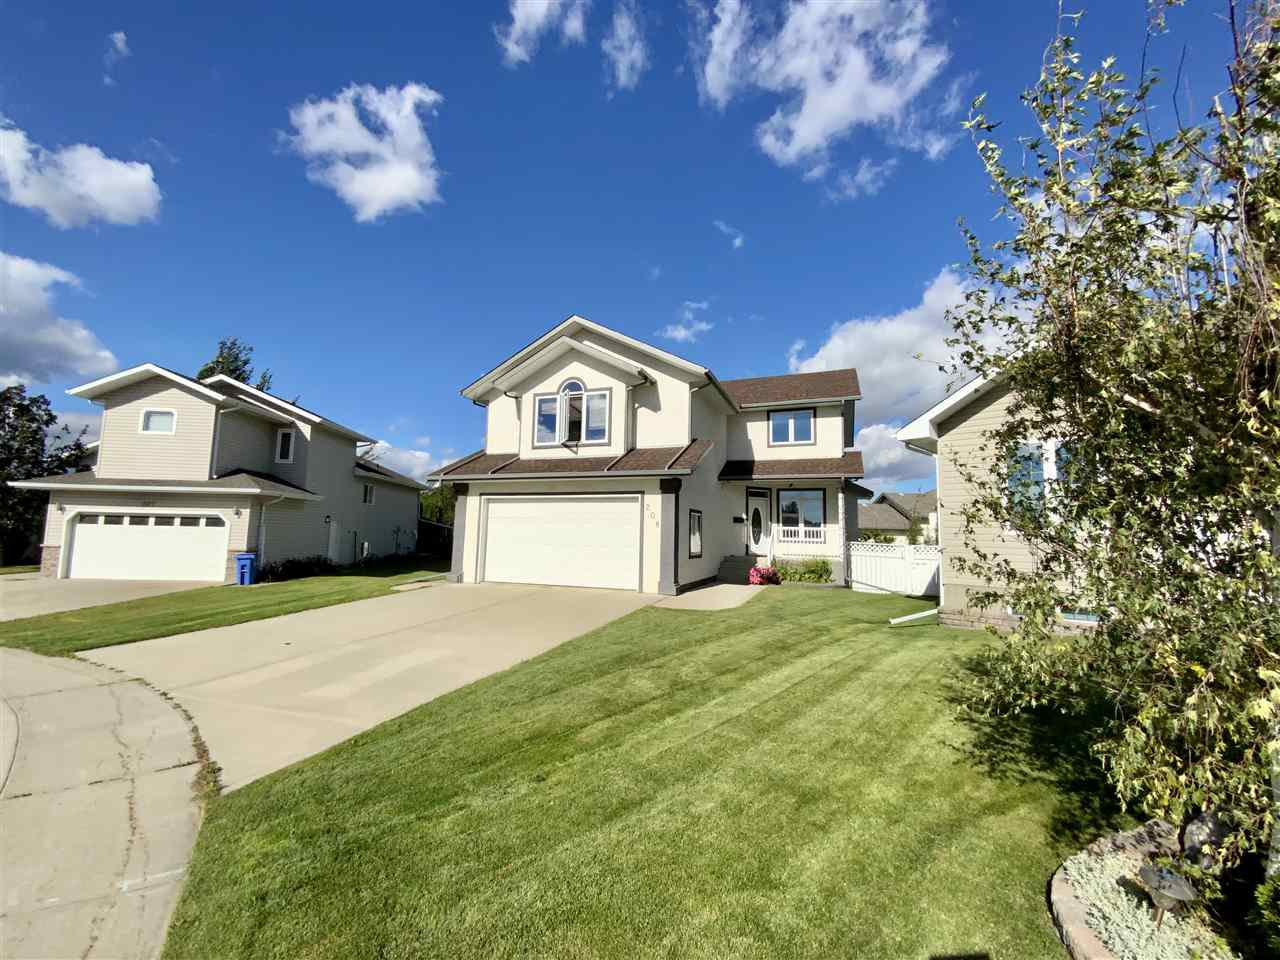 Main Photo: 208 Parkglen Close: Wetaskiwin House for sale : MLS®# E4212819